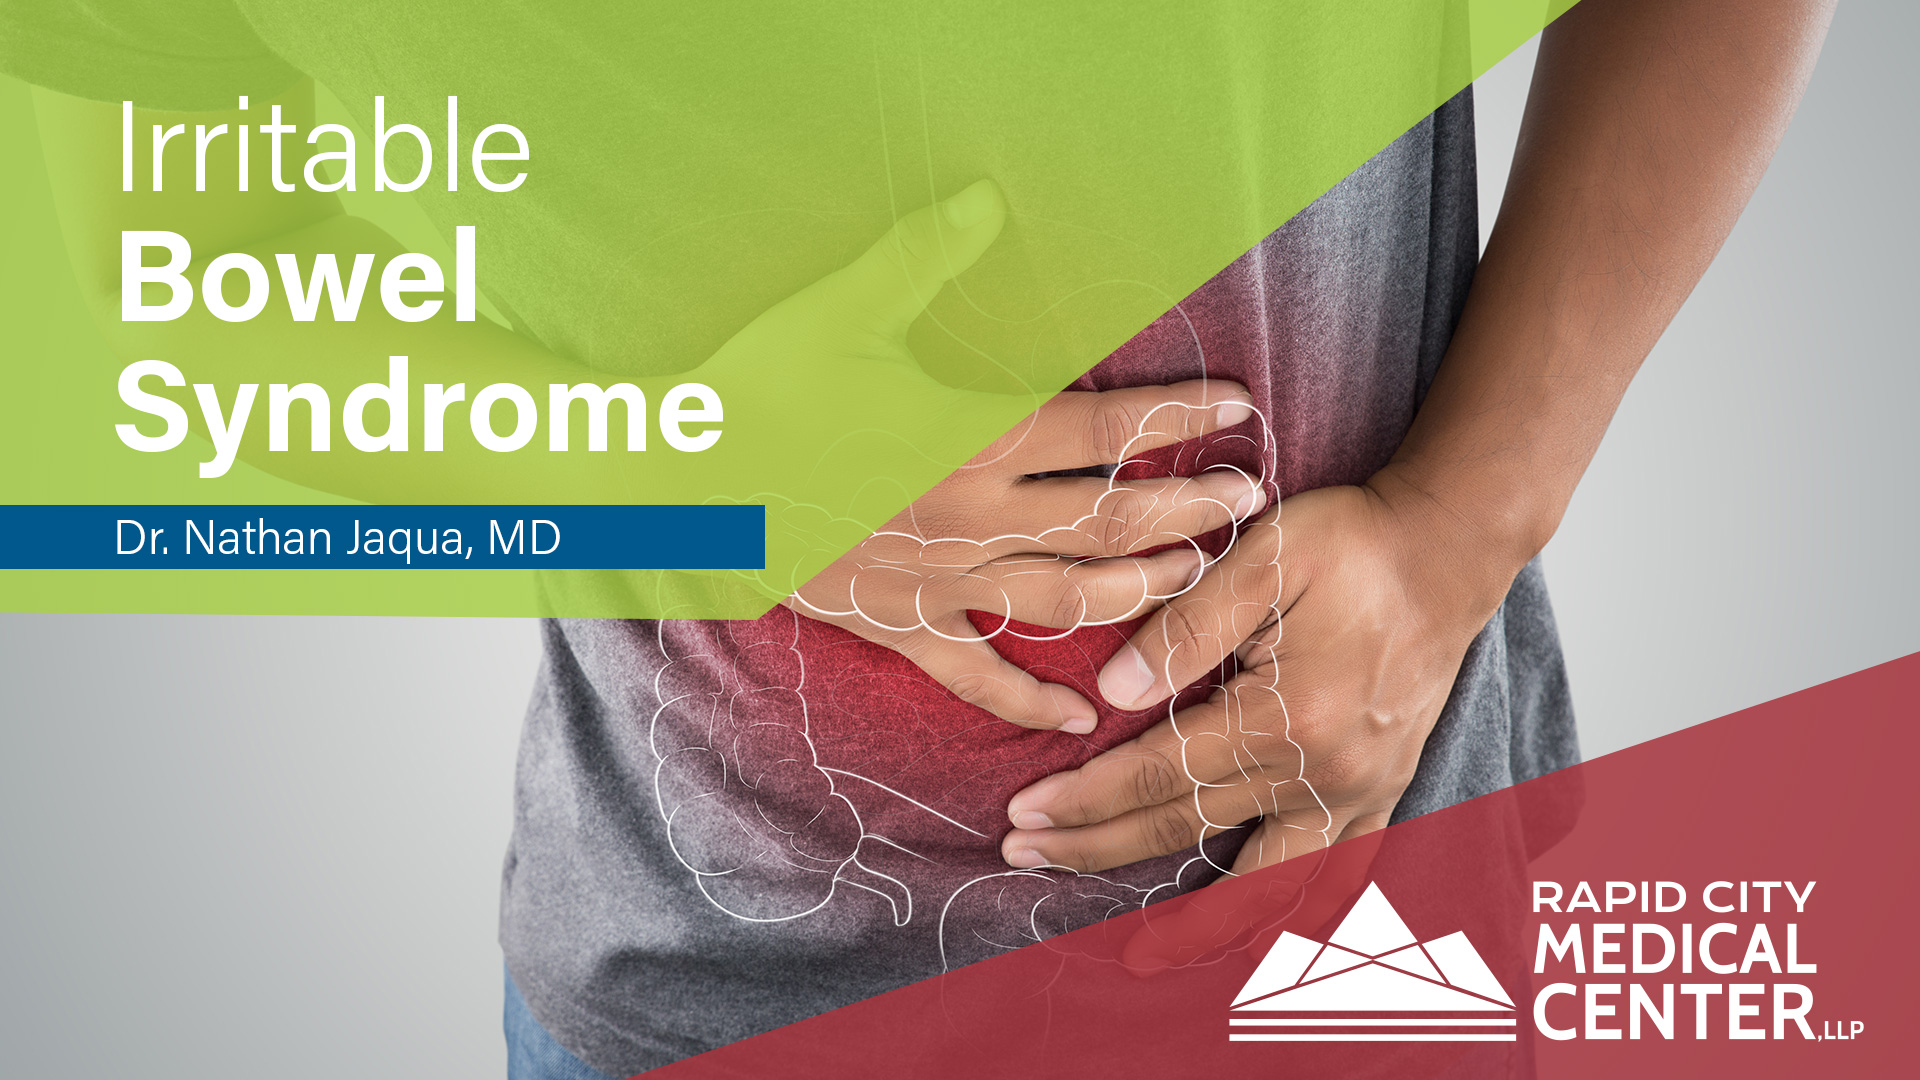 Irritable Bowel Syndrome Awareness Month